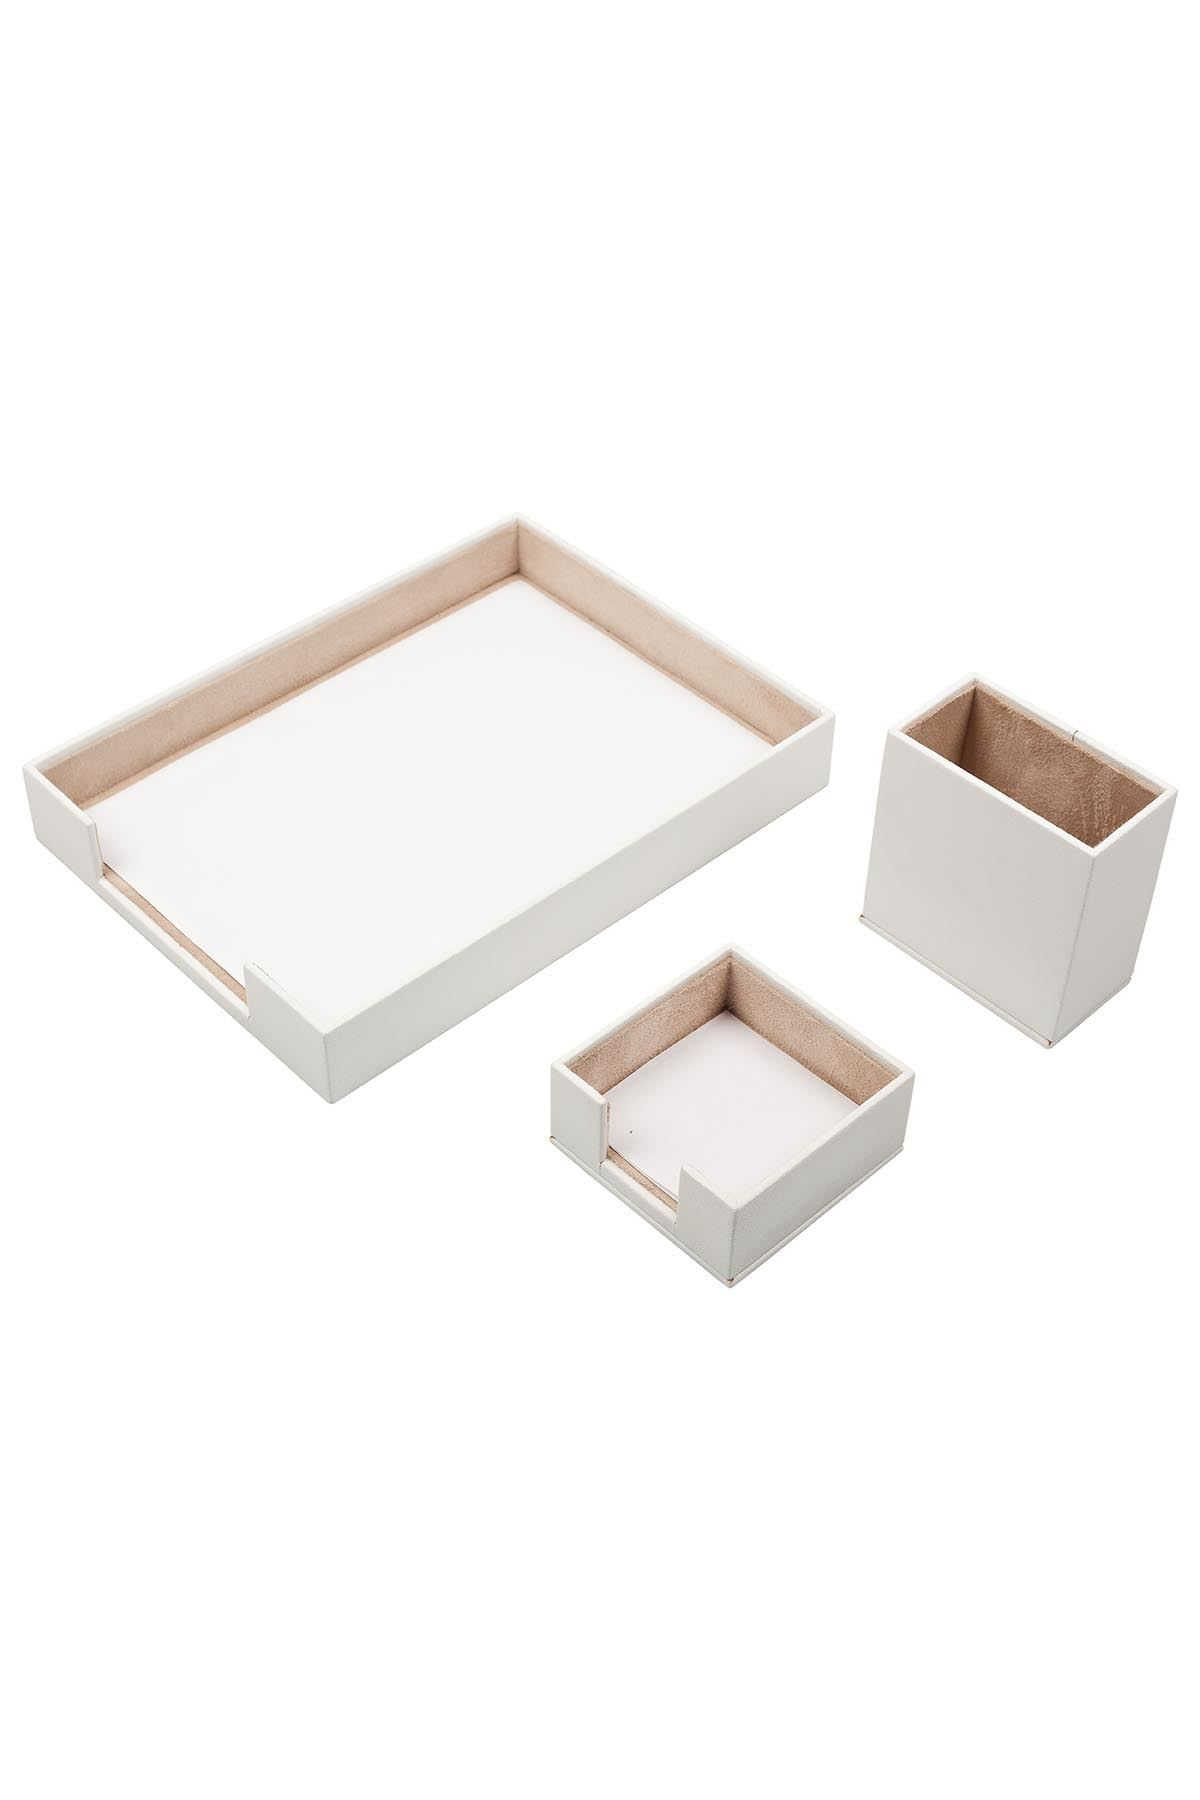 Document Tray With 2 Accessories White| Desk Set Accessories | Desktop Accessories | Desk Accessories | Desk Organizers